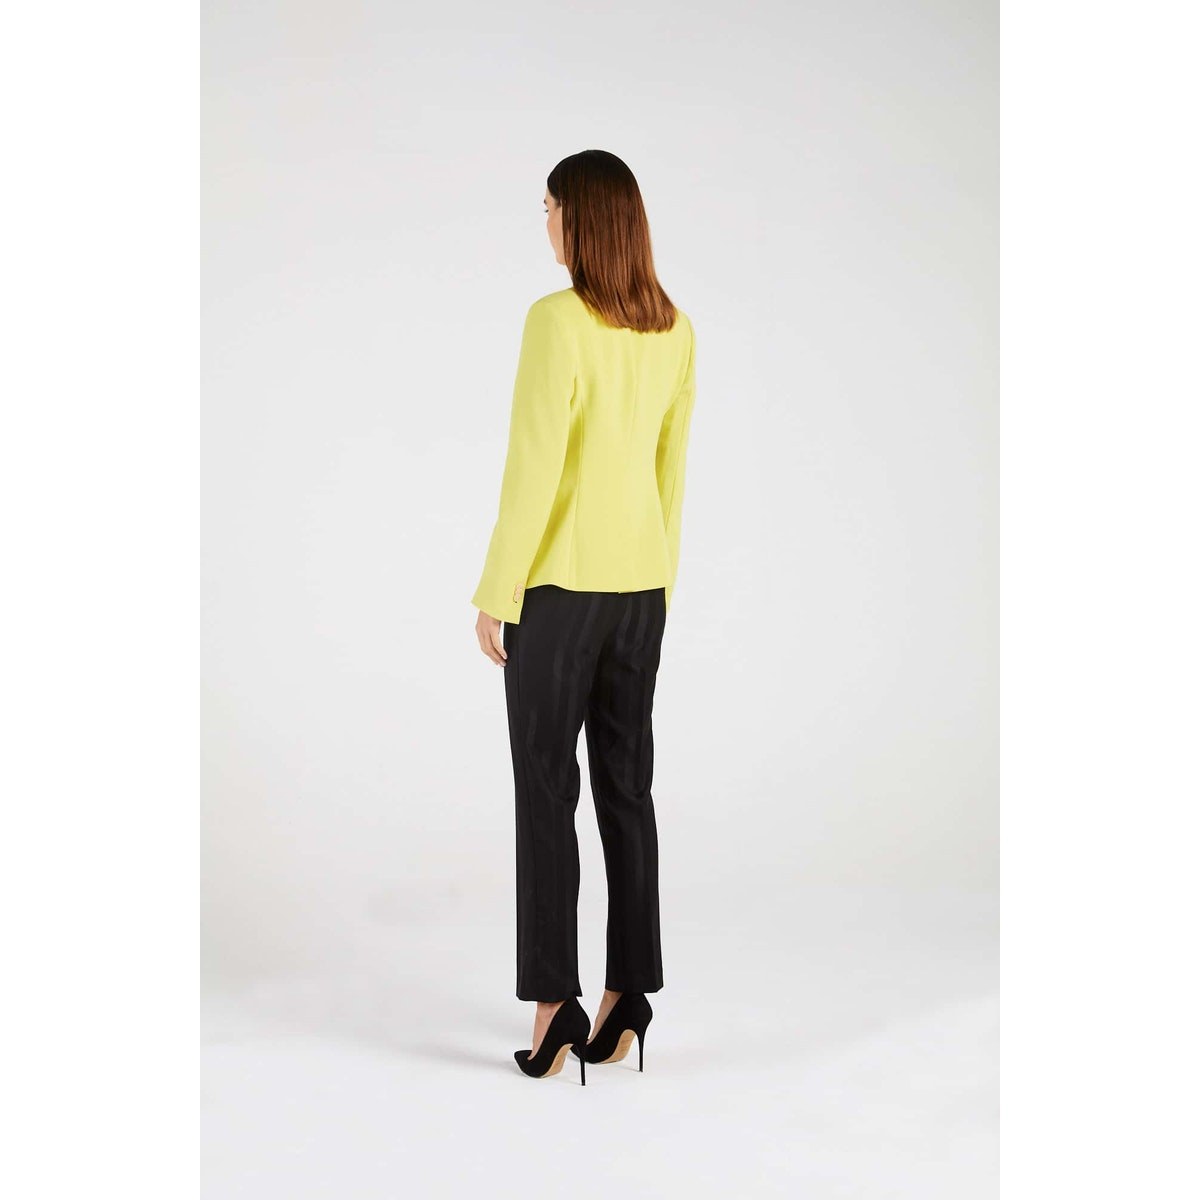 InStitchu Collection The Freeman Yellow Jacket